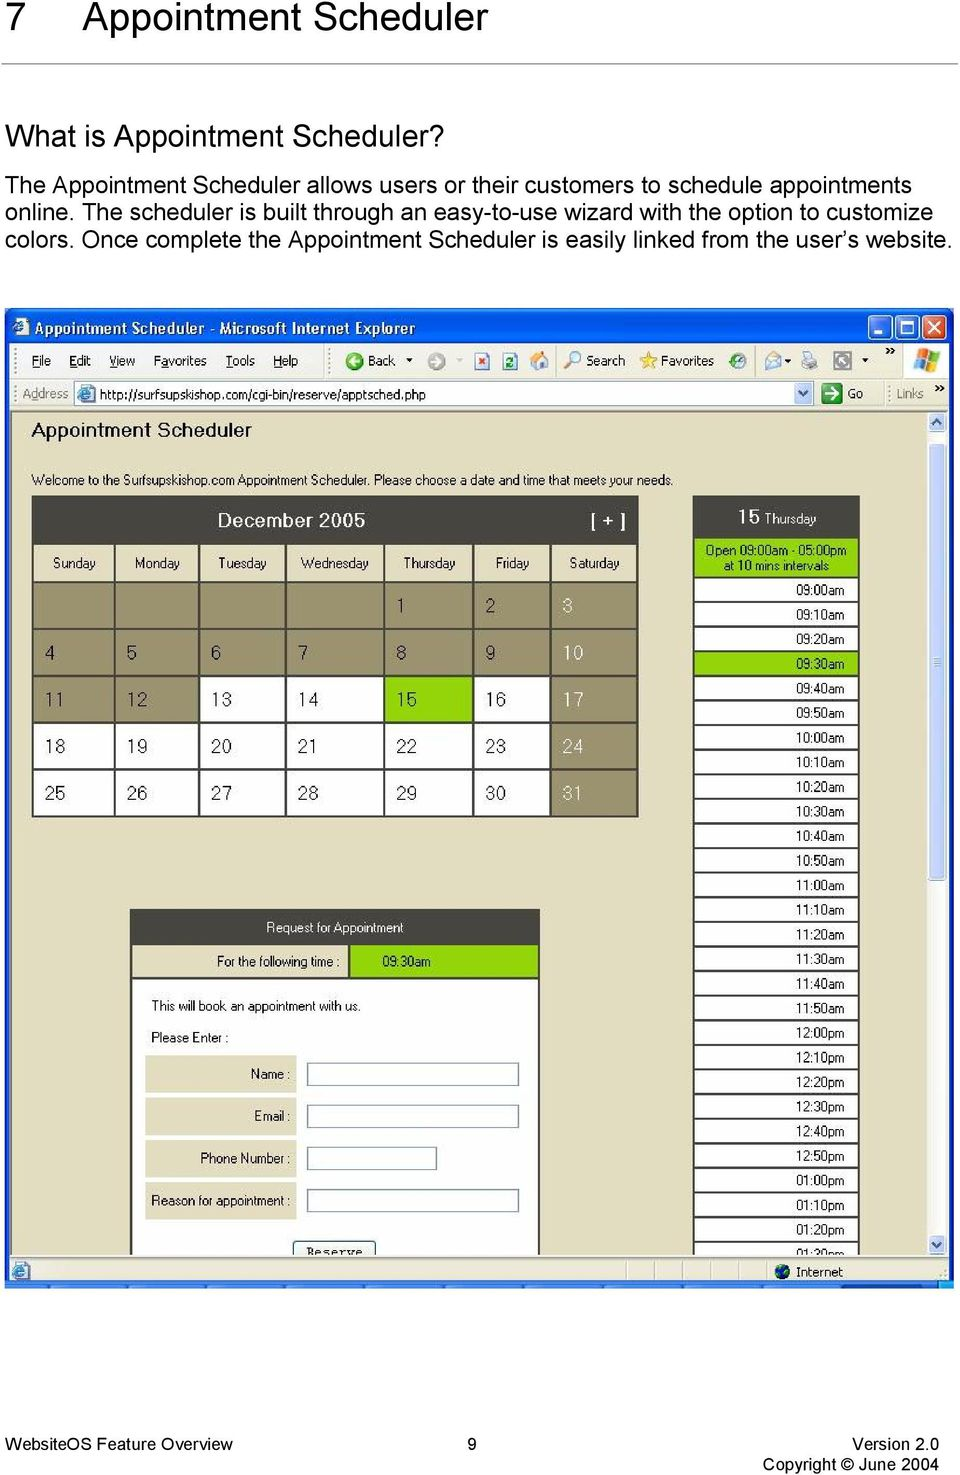 The scheduler is built through an easy to use wizard with the option to customize colors.